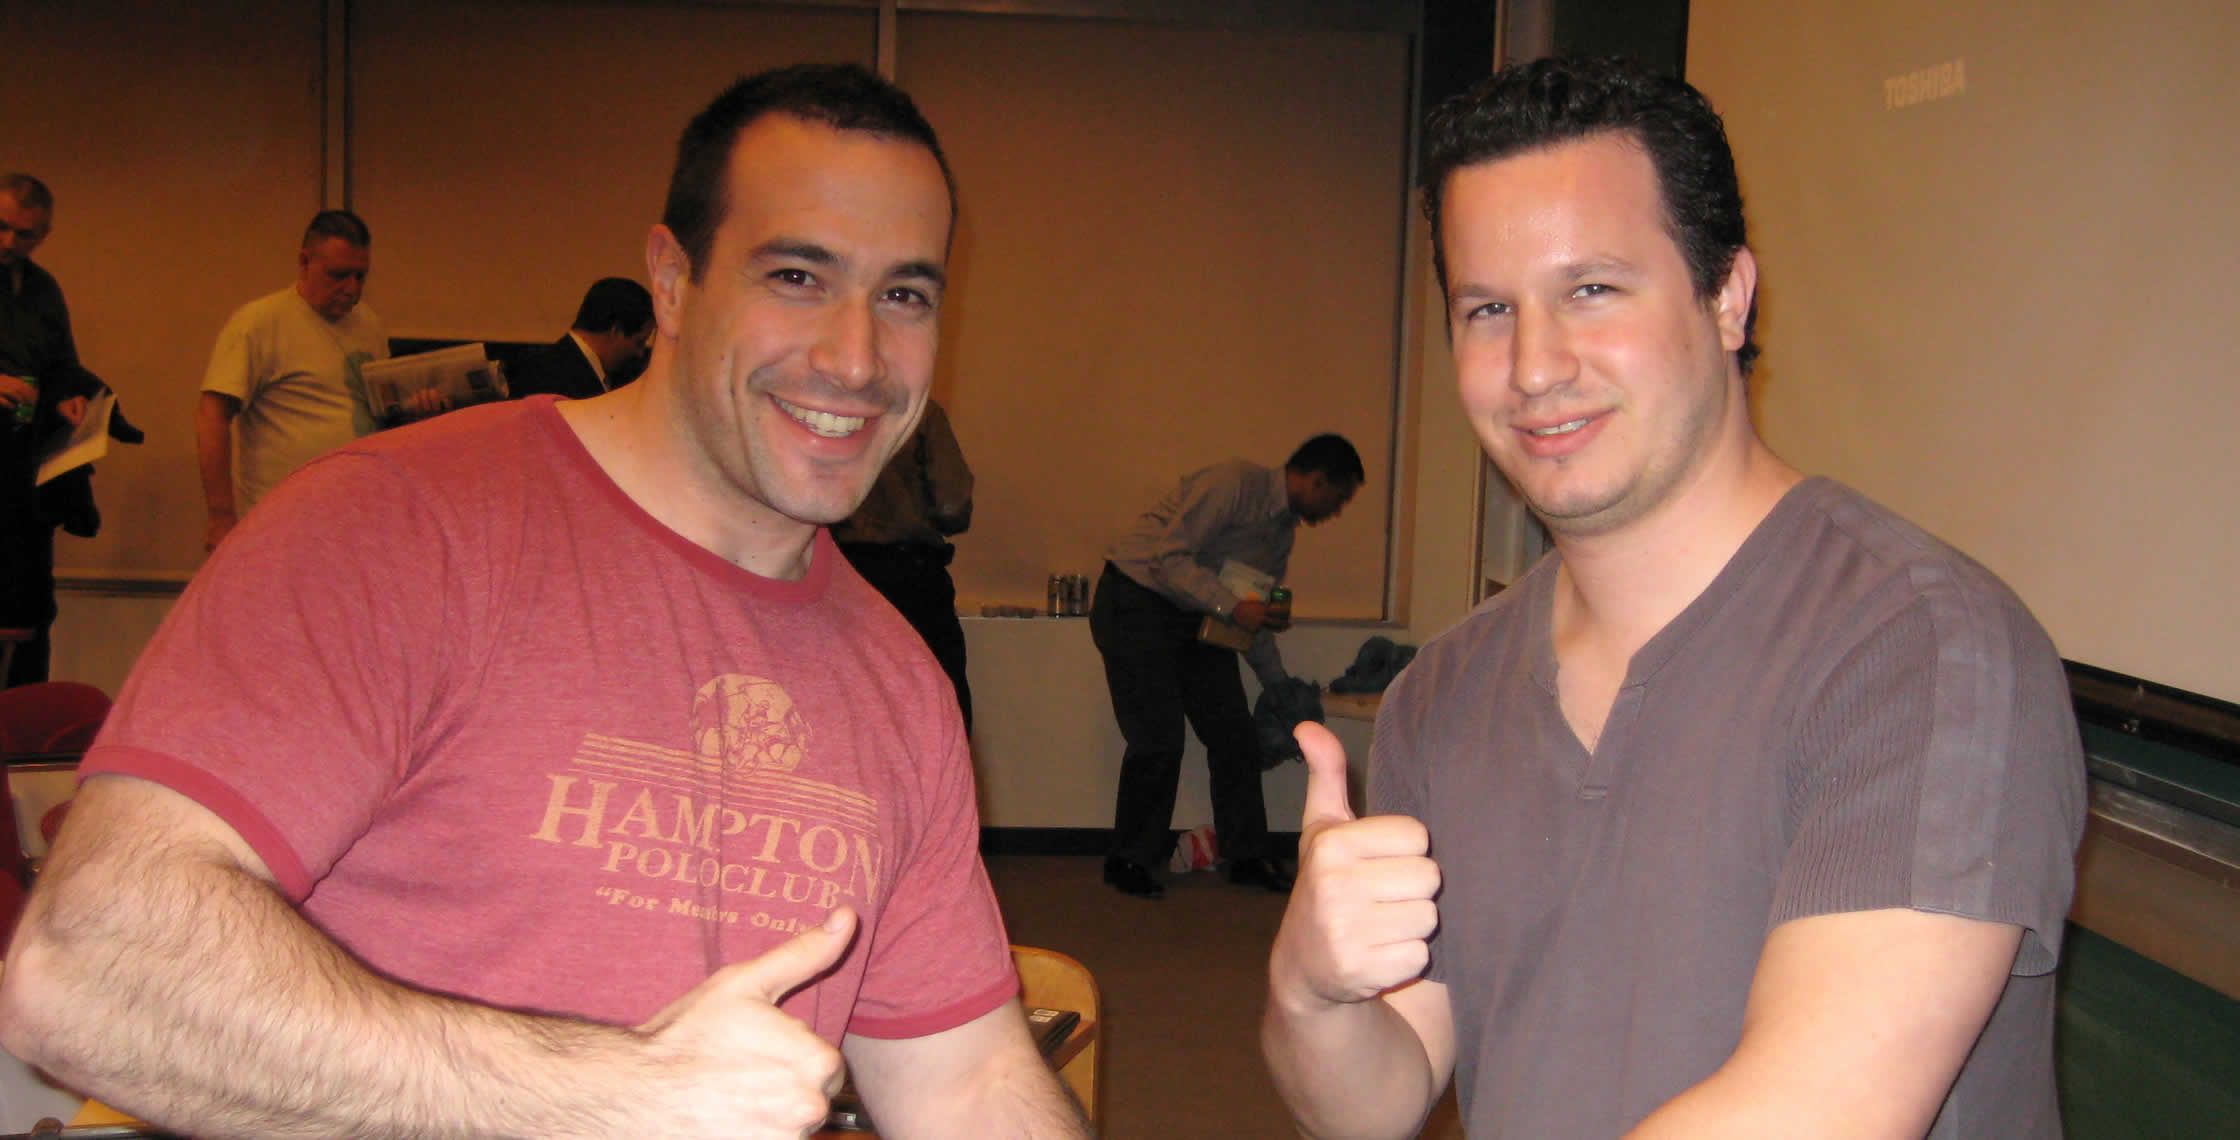 Ben Nadel at the New York ColdFusion User Group (Apr. 2008) with: Rob Gonda